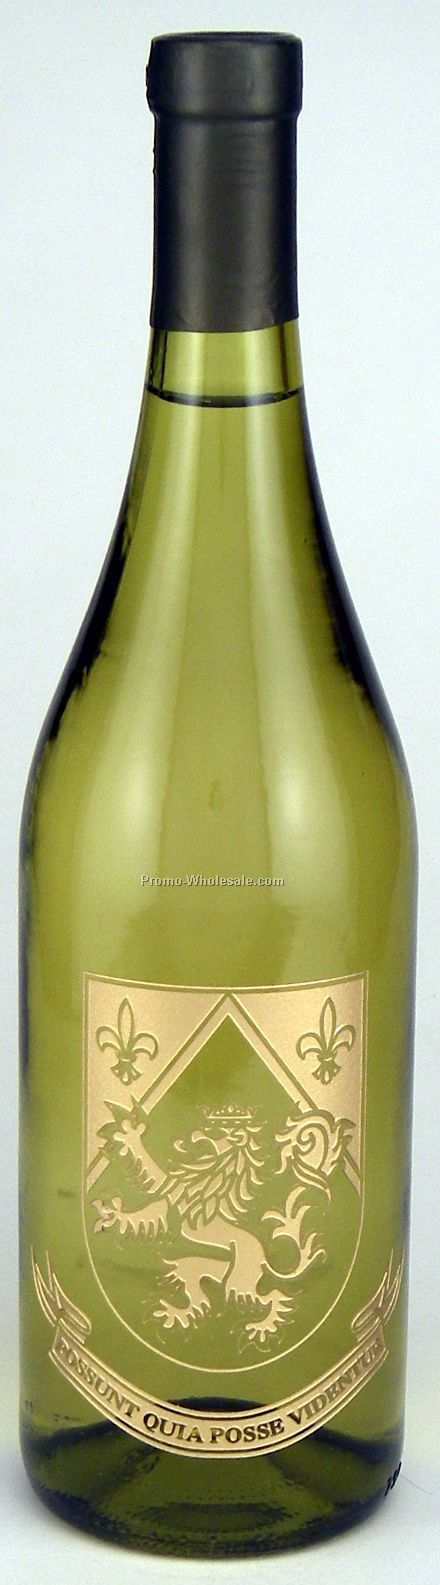 750 Ml Custom Etched Chardonnay Woodbridge, Ca, 1 Color Paint Fill